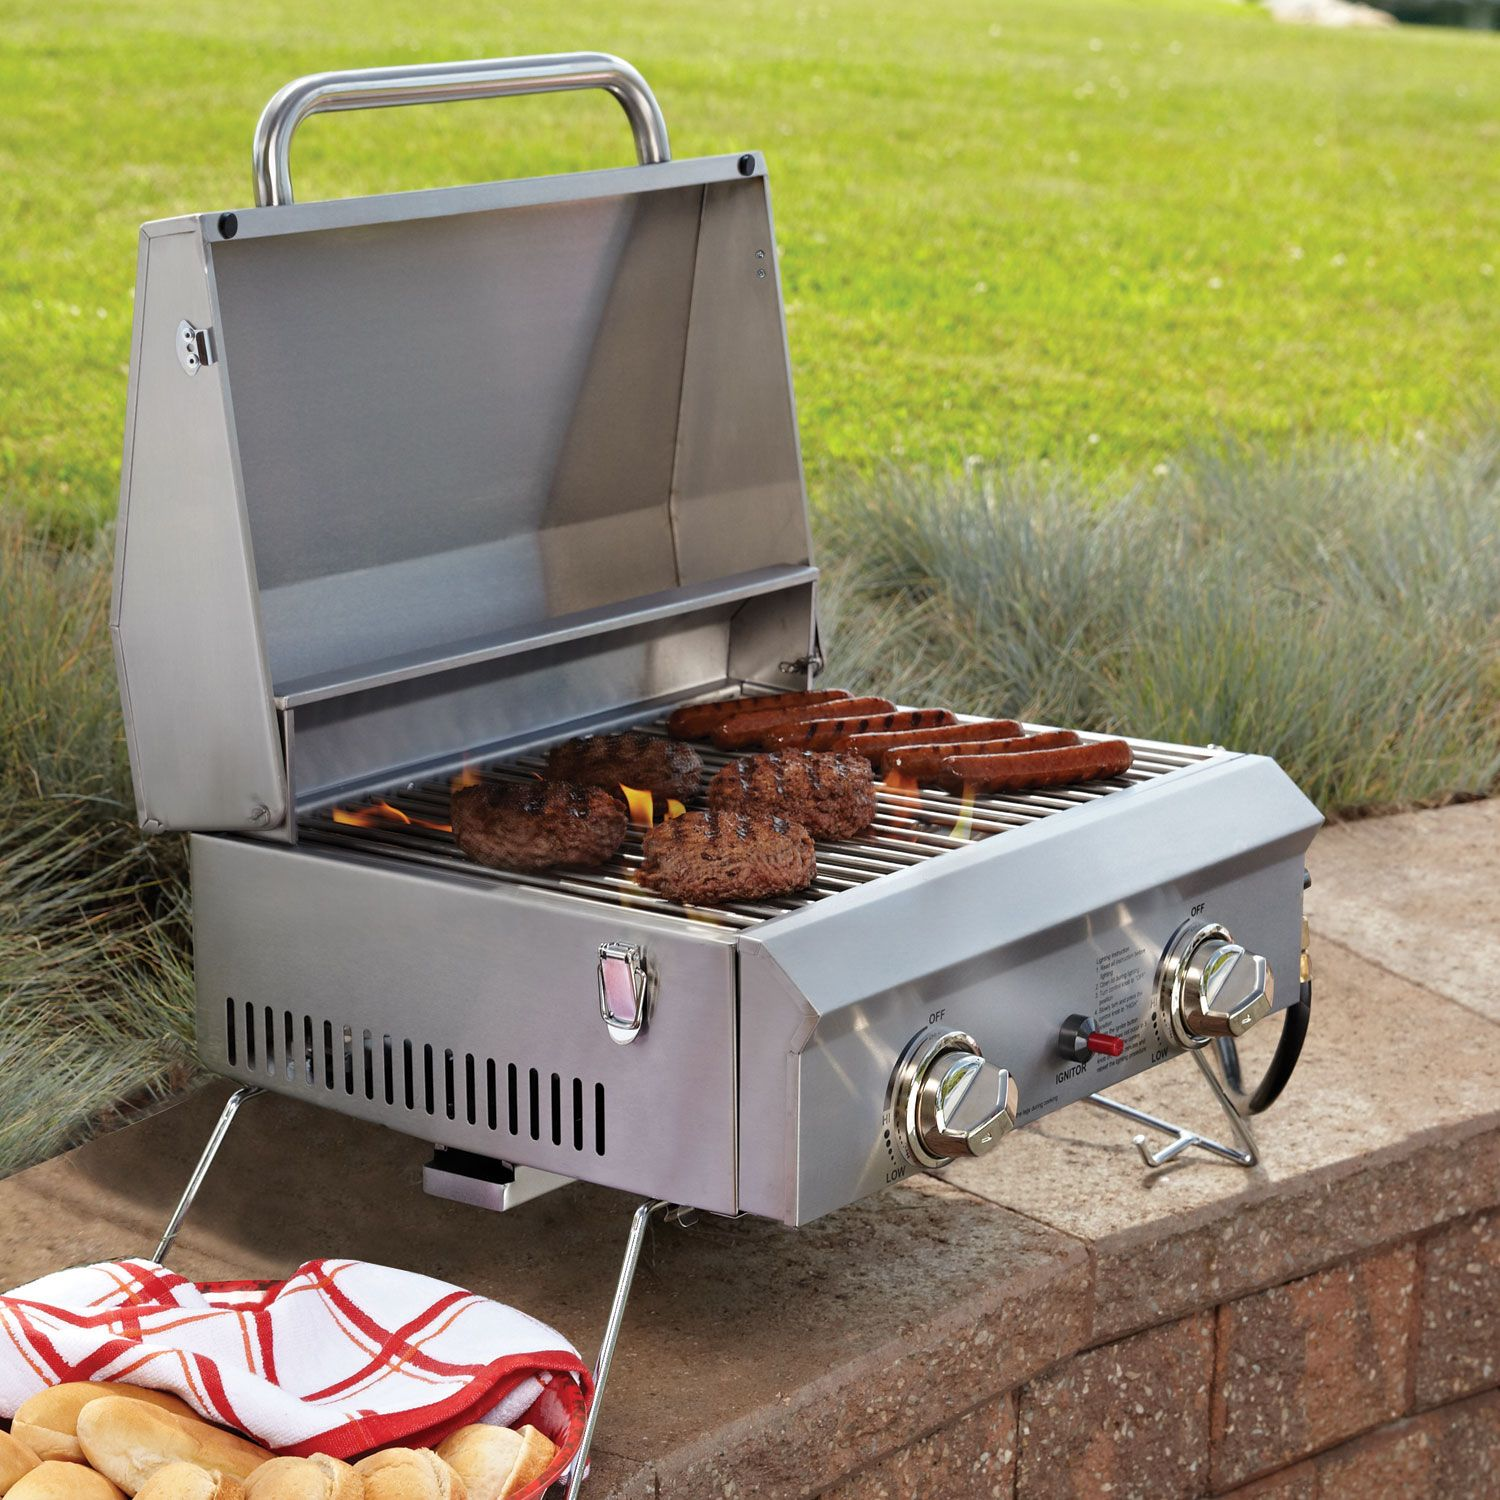 Portable Gas Bbq Grills : Outdoor portable stainless steel burners gas bbq grill